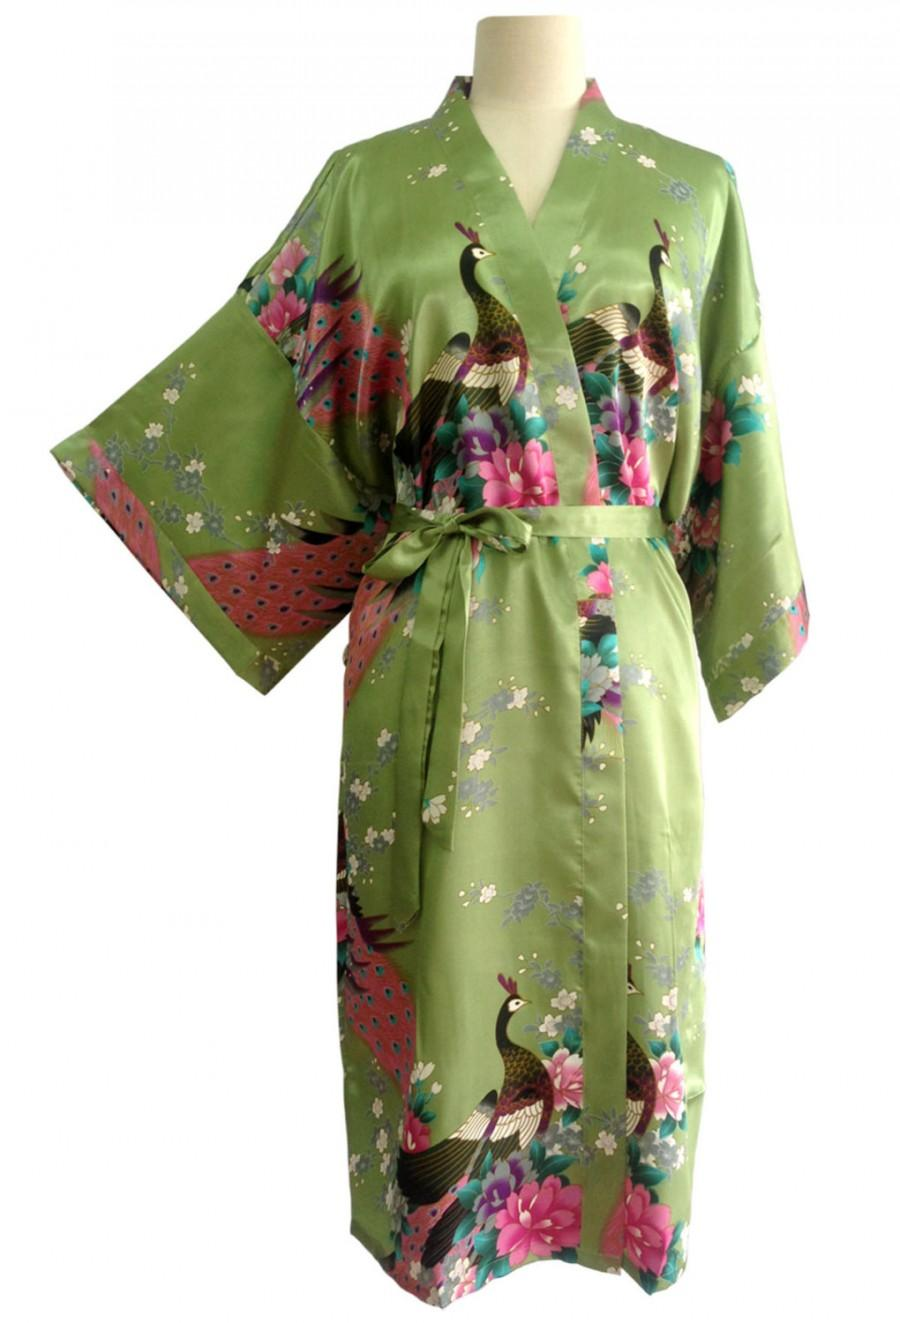 Düğün - On Sale Kimono Robes Bridesmaids Silk Satin Green Colour Paint Peacock Design Pattern Gift Wedding dress for Party Free Size